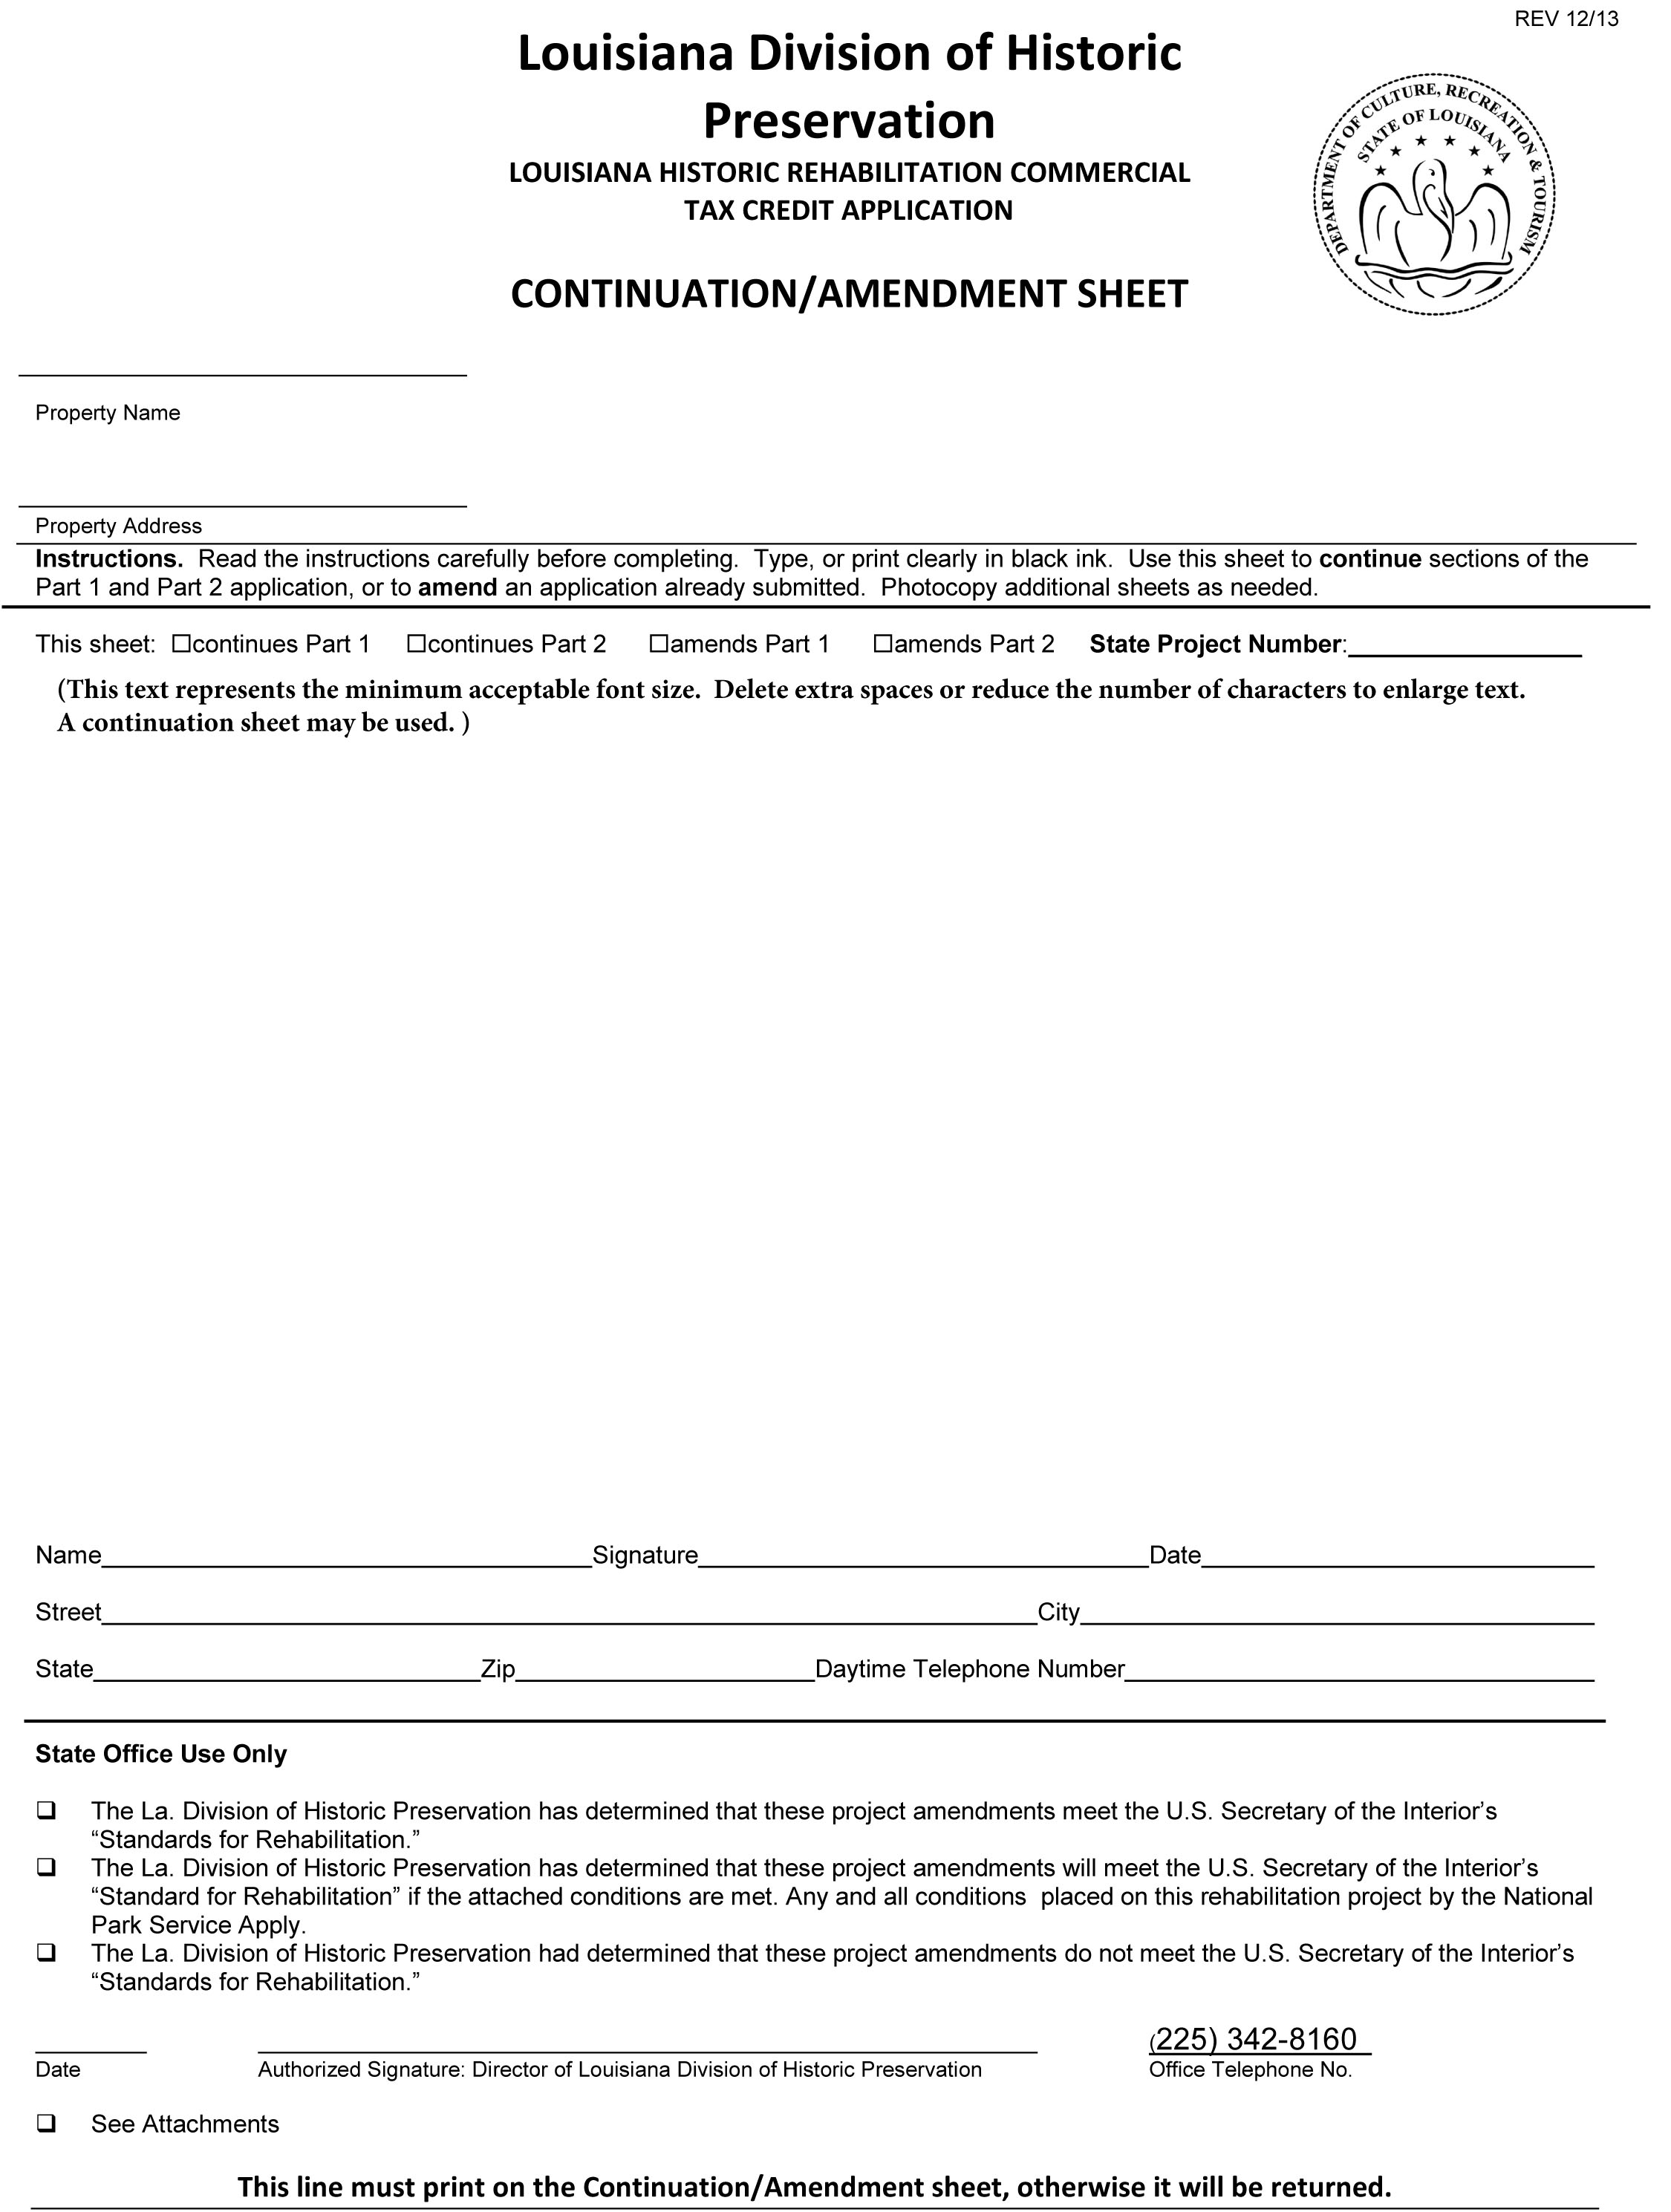 STC-Application-Amendment-Cover-10-24-14